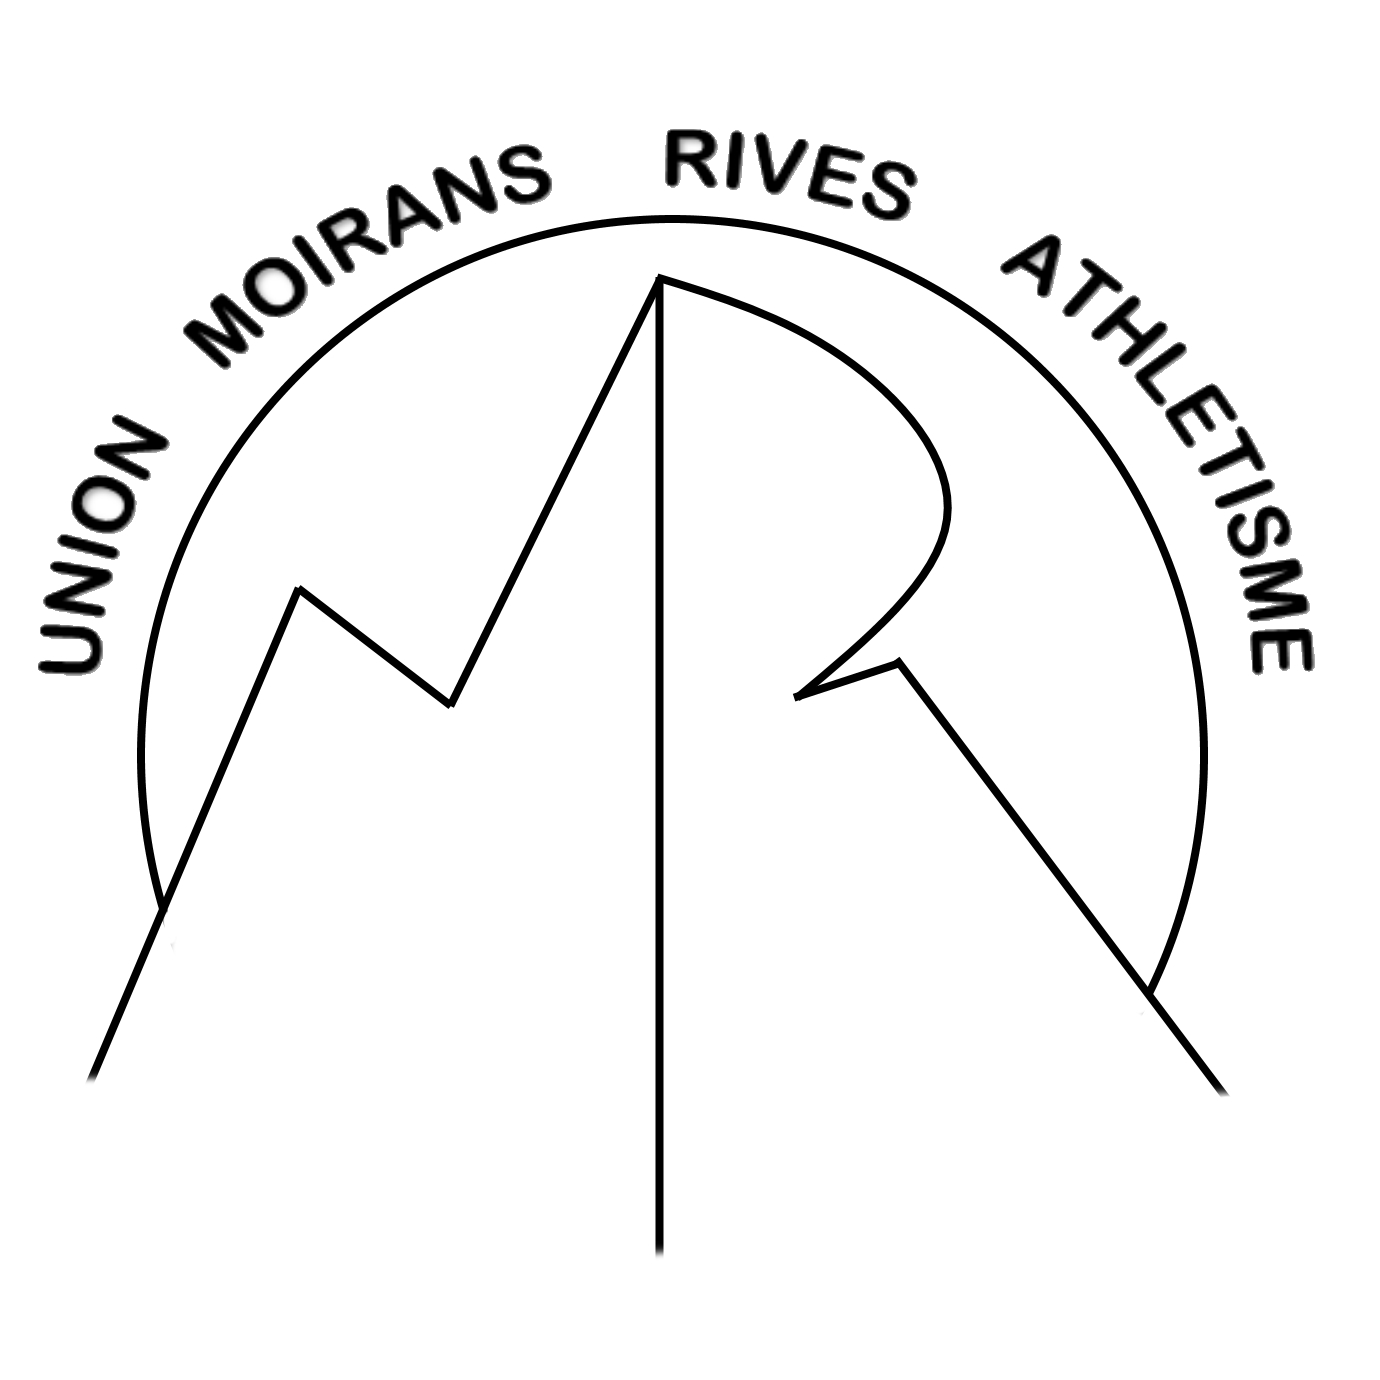 Union Moirans Rives Athlétisme